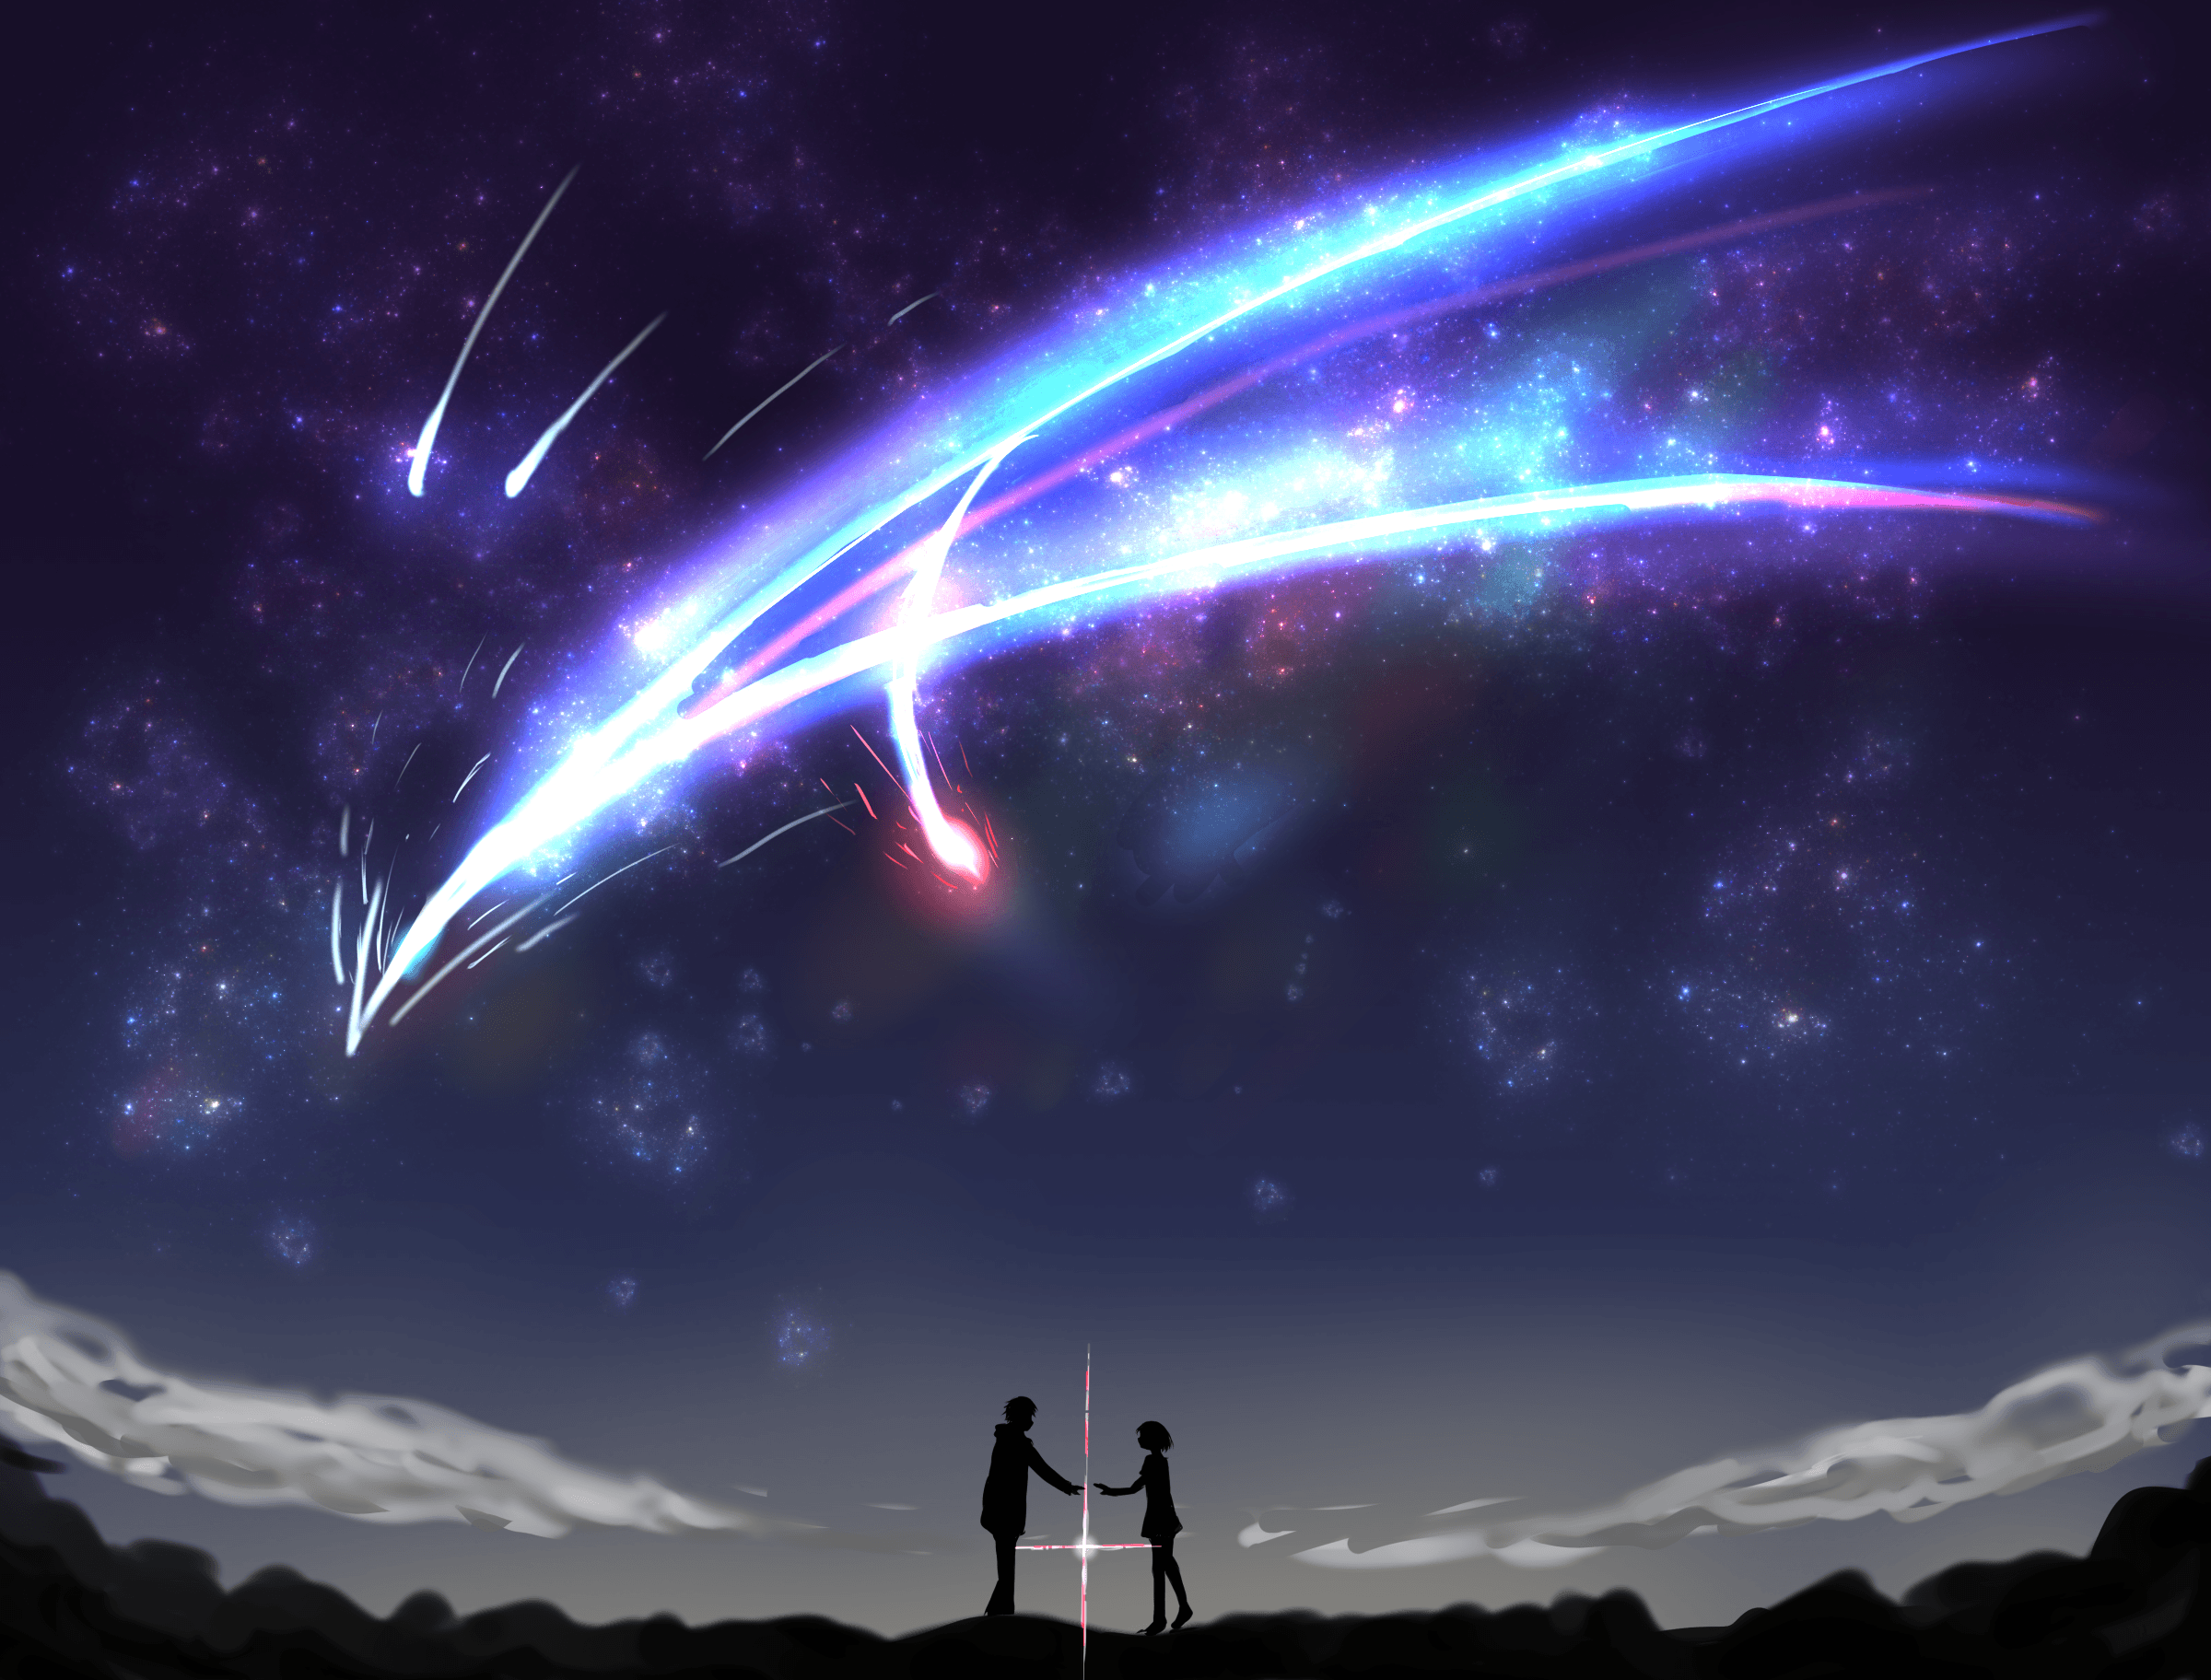 Your Name Anime Wallpapers   Top Your Name Anime Backgrounds 2400x1824